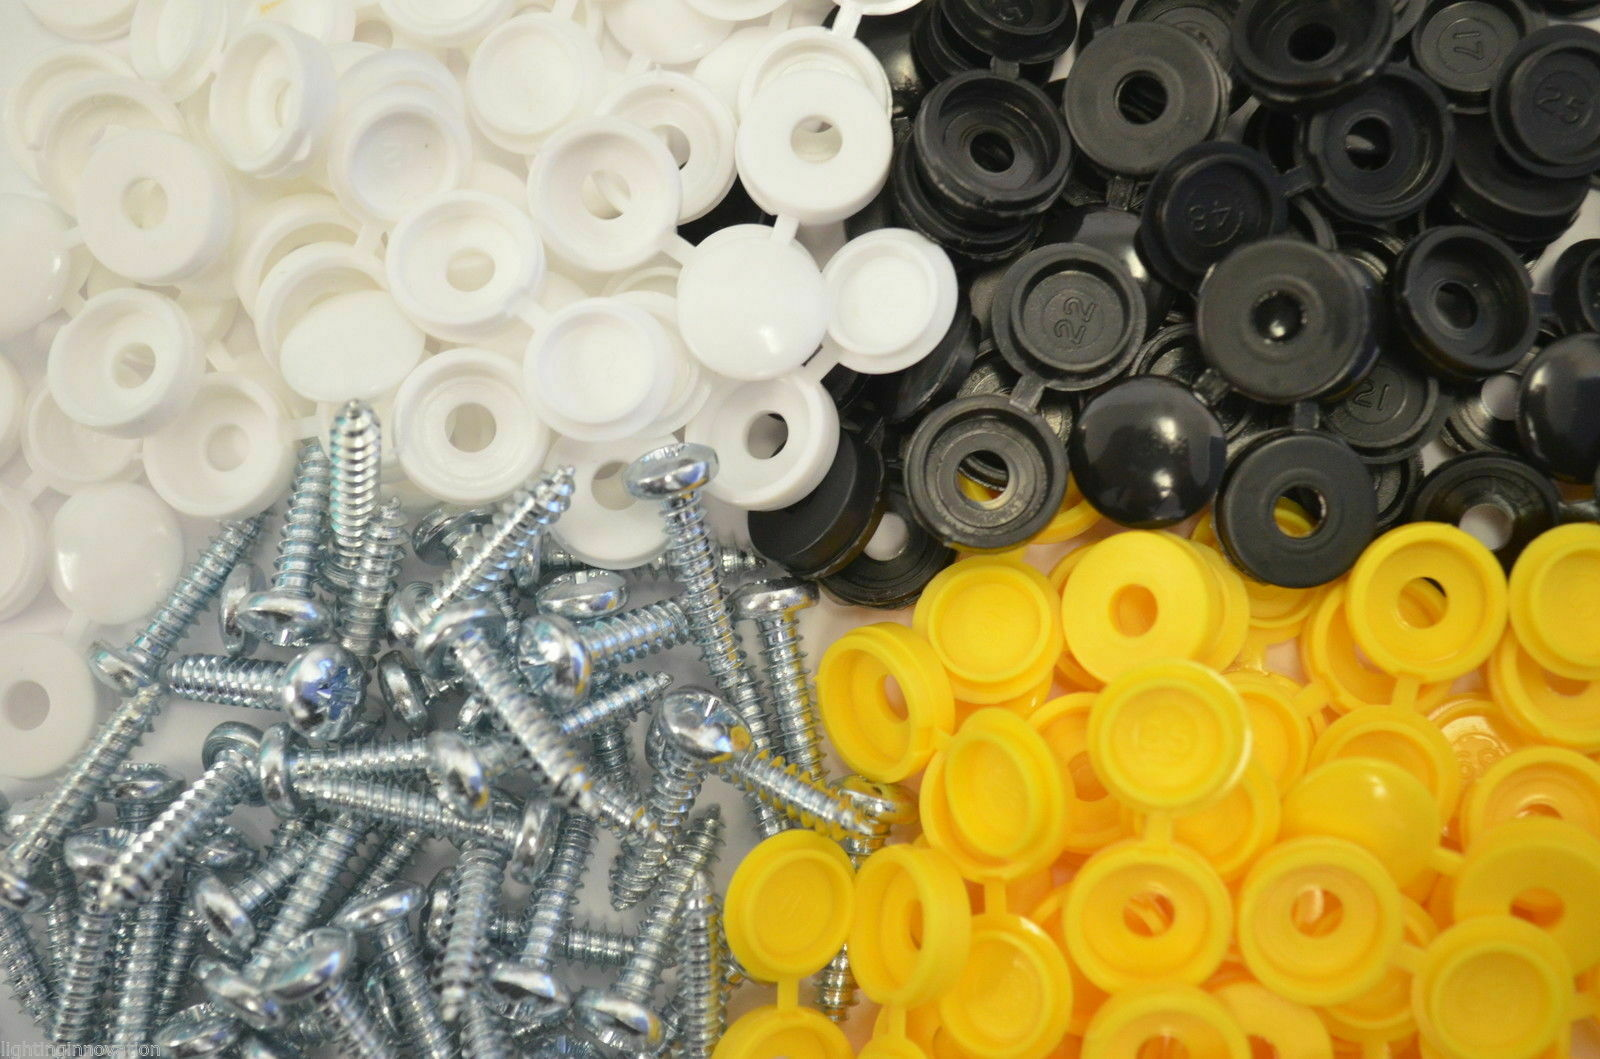 24 CAR NUMBER PLATE FIXING FITTING KIT SCREWS & CAPS WHITE YELLOW BLACK LICENSE